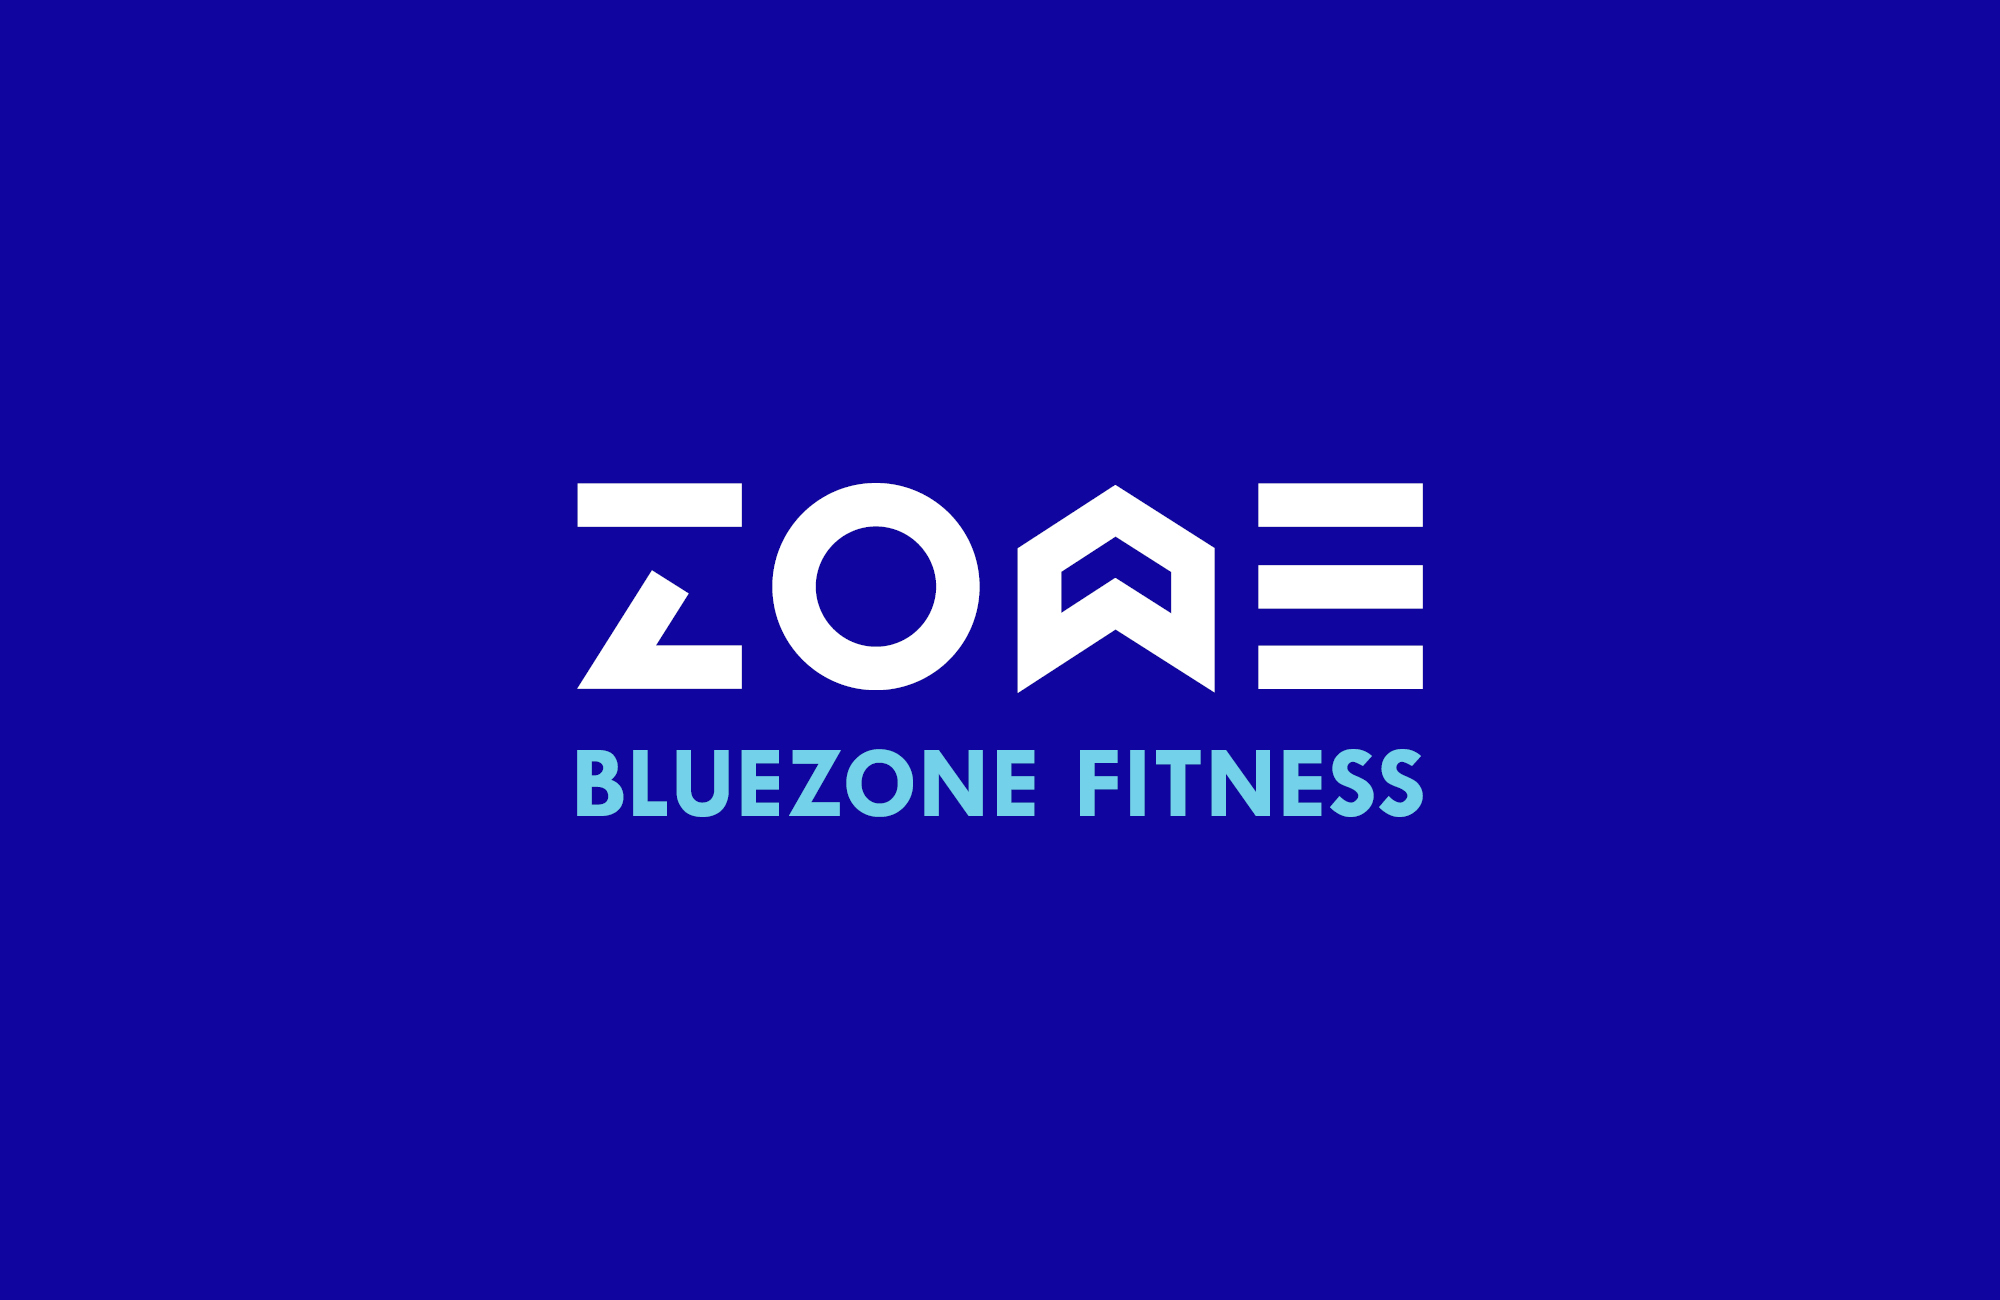 Cover image: BlueZone Fitness